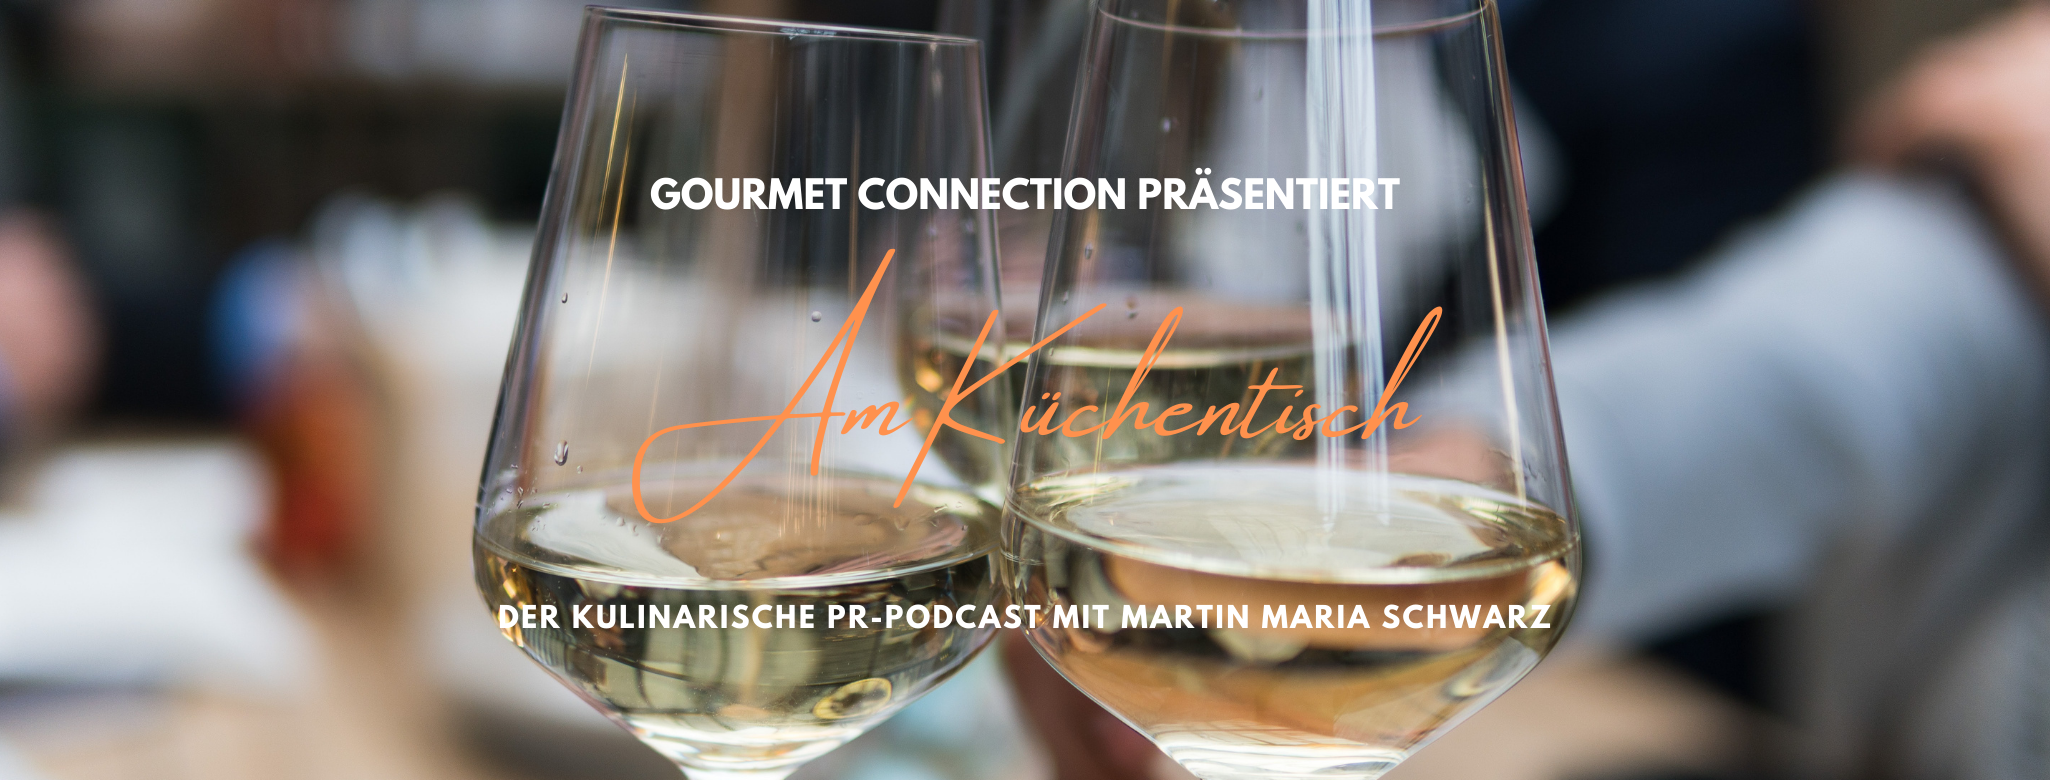 Titelbild Podcast Gourmet Connection Am Küchentisch